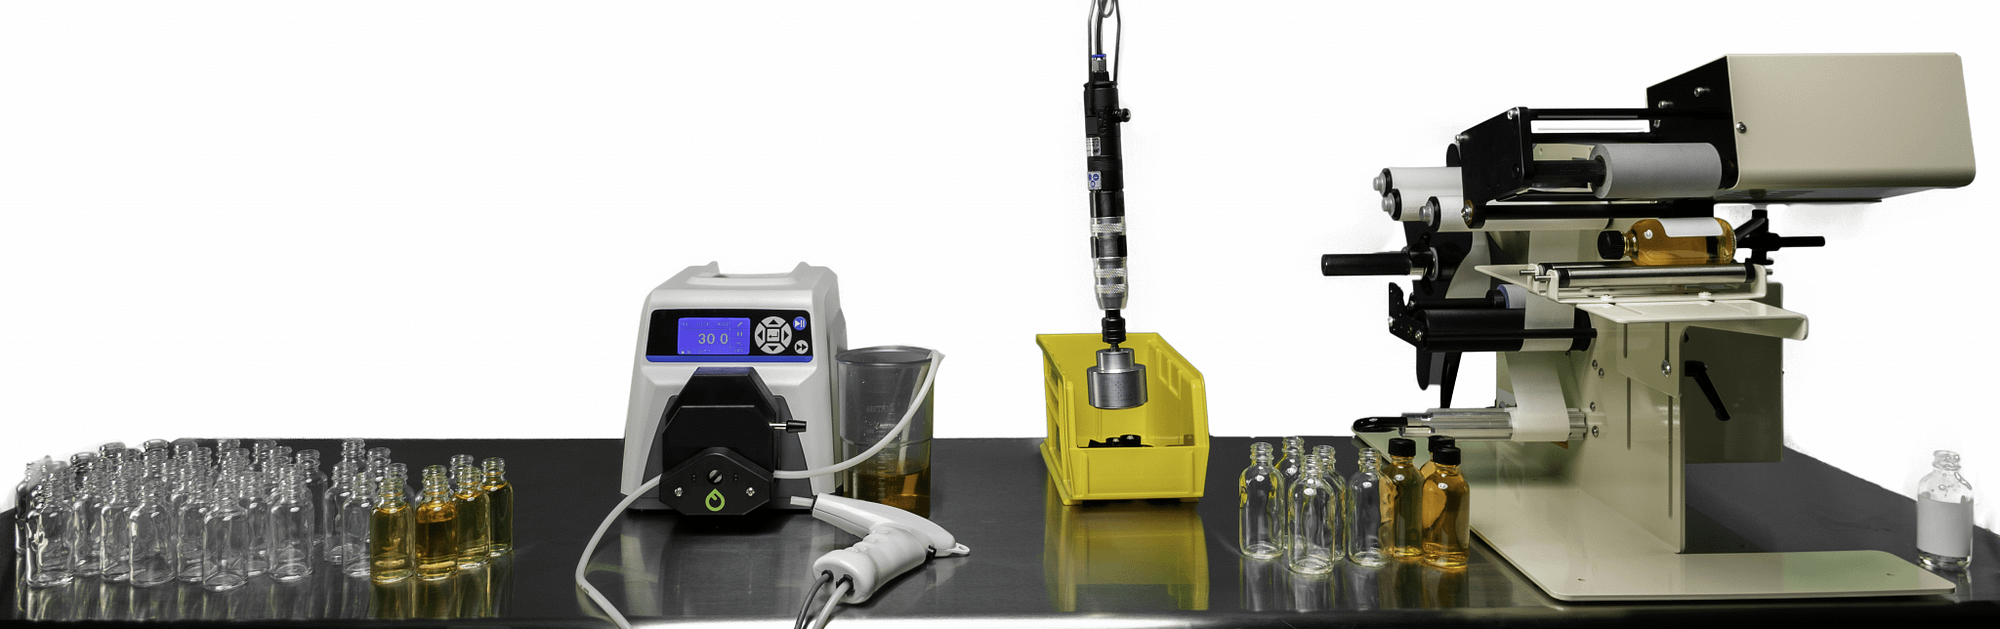 Fluid Solutions Series 1 Peristaltic Filler Line